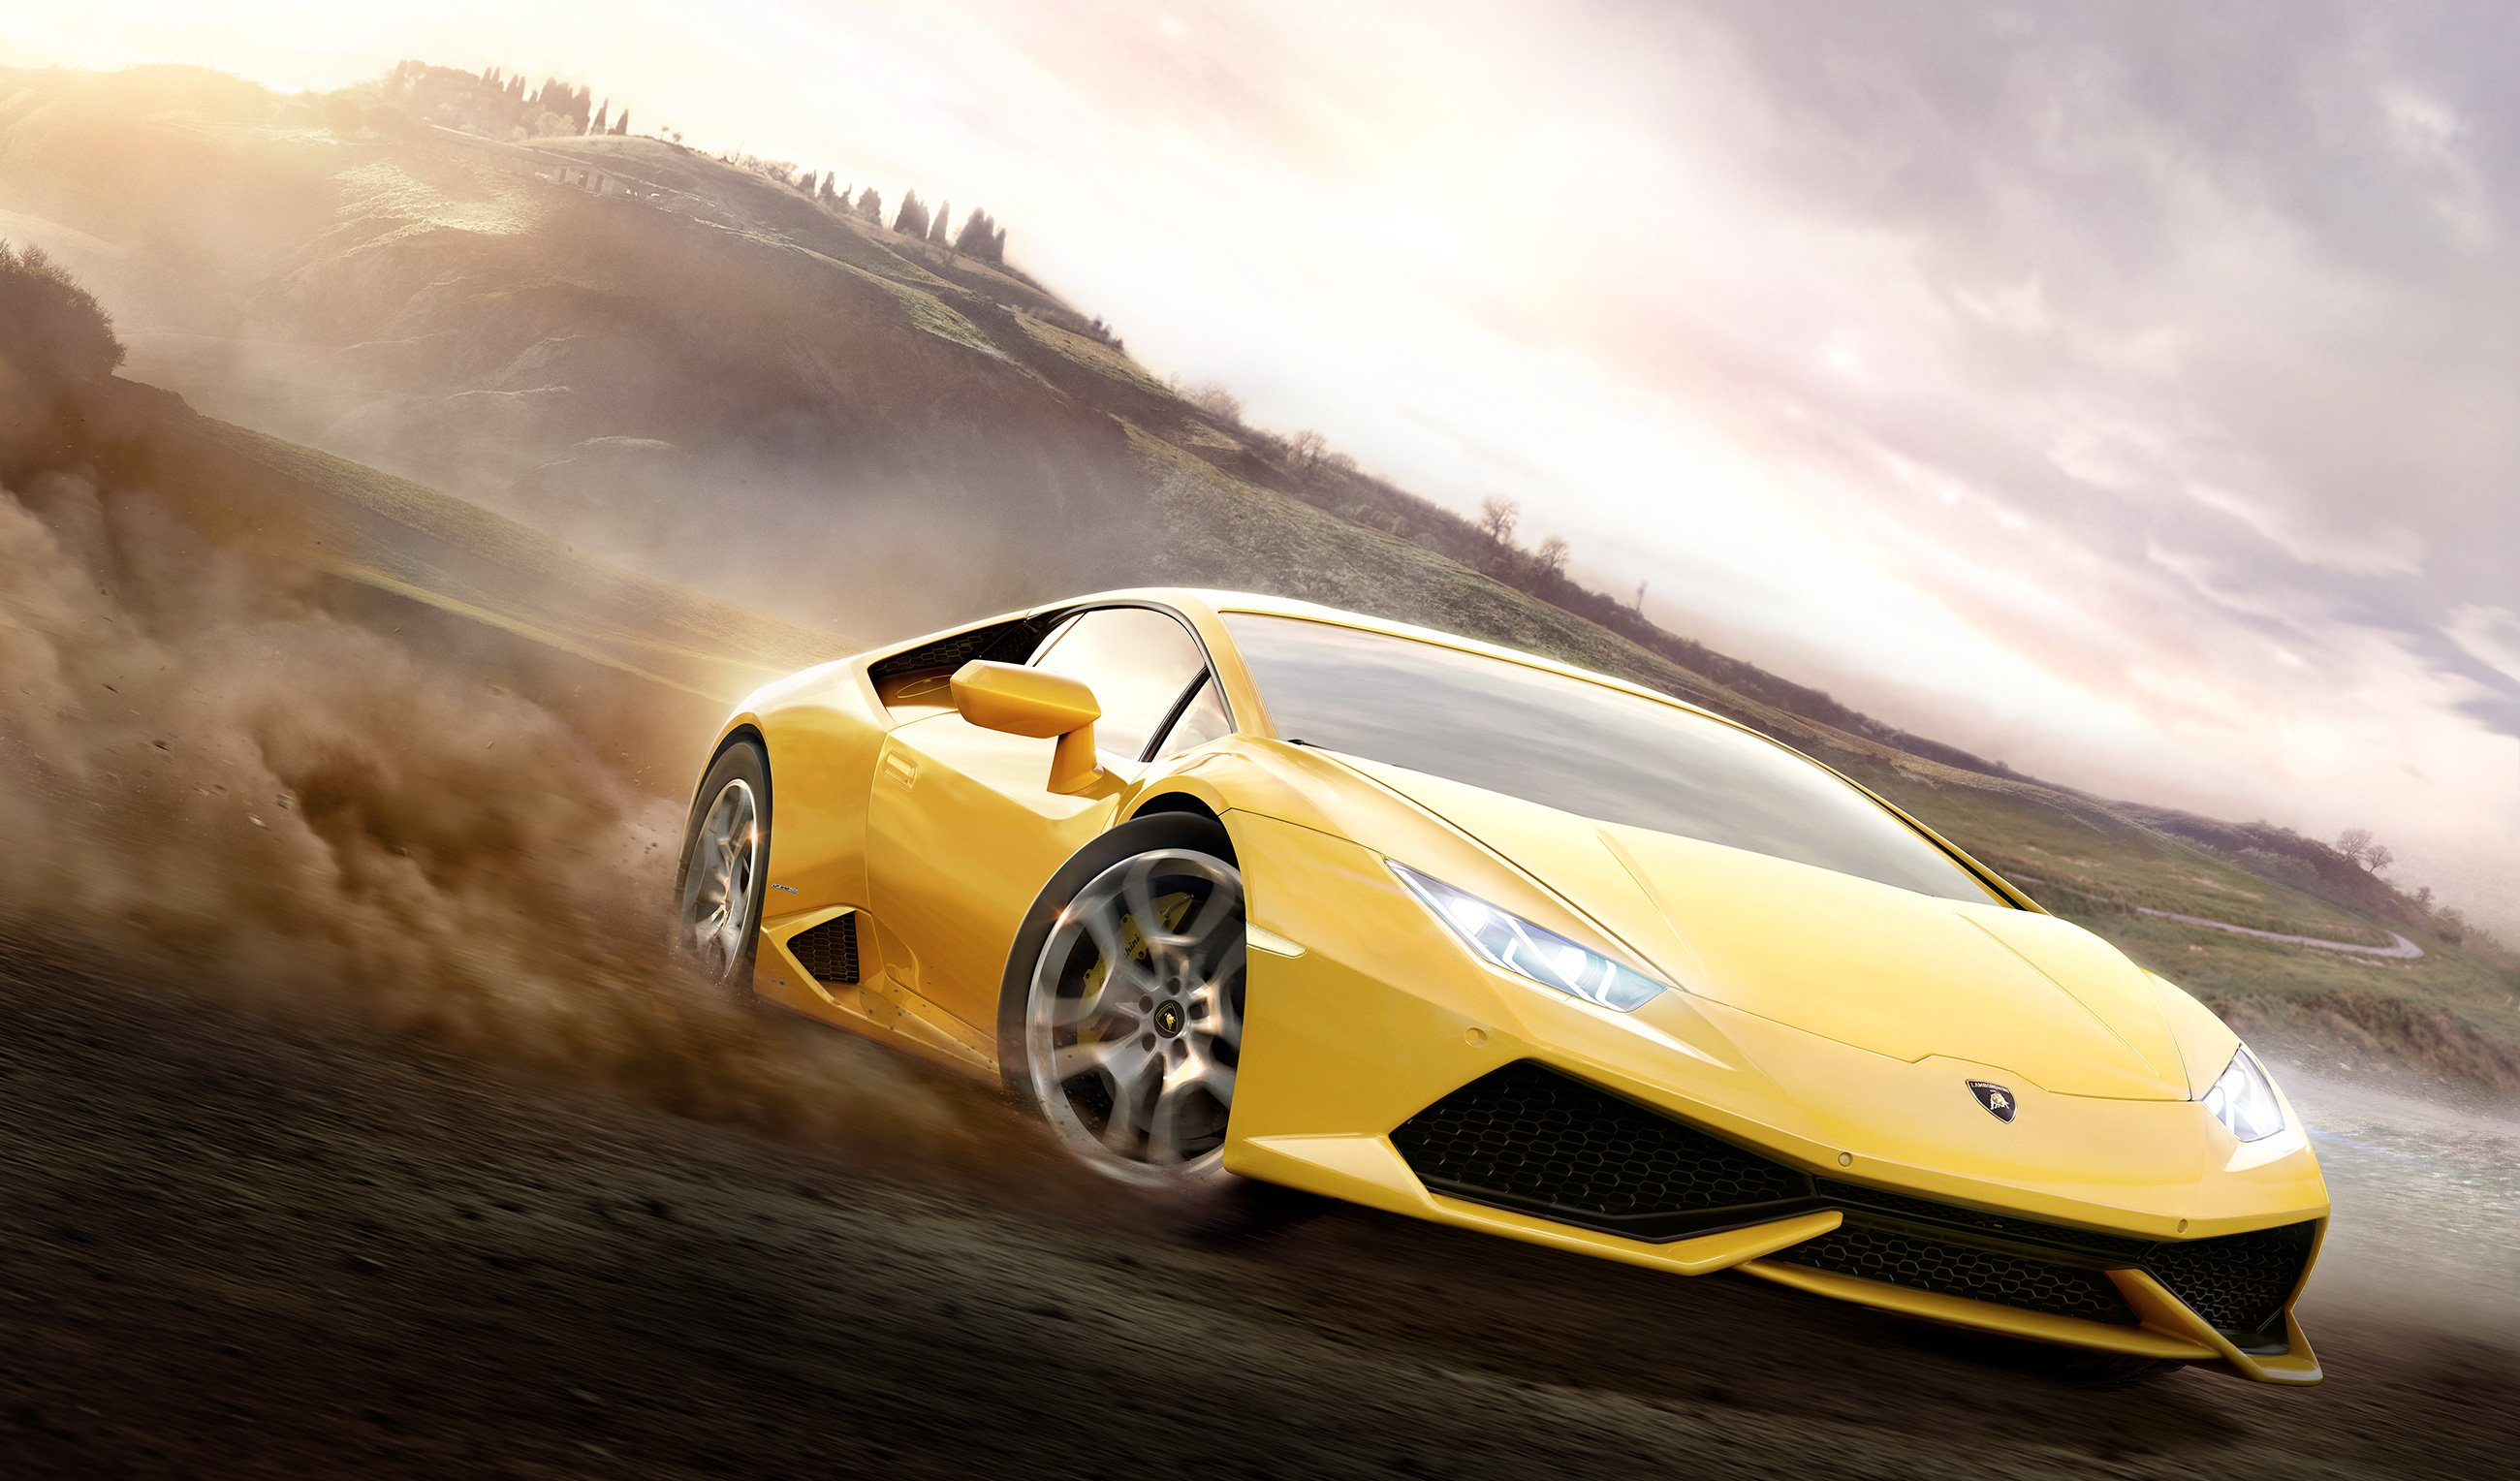 Forza Horizon 2 Wallpaper 2600x1528